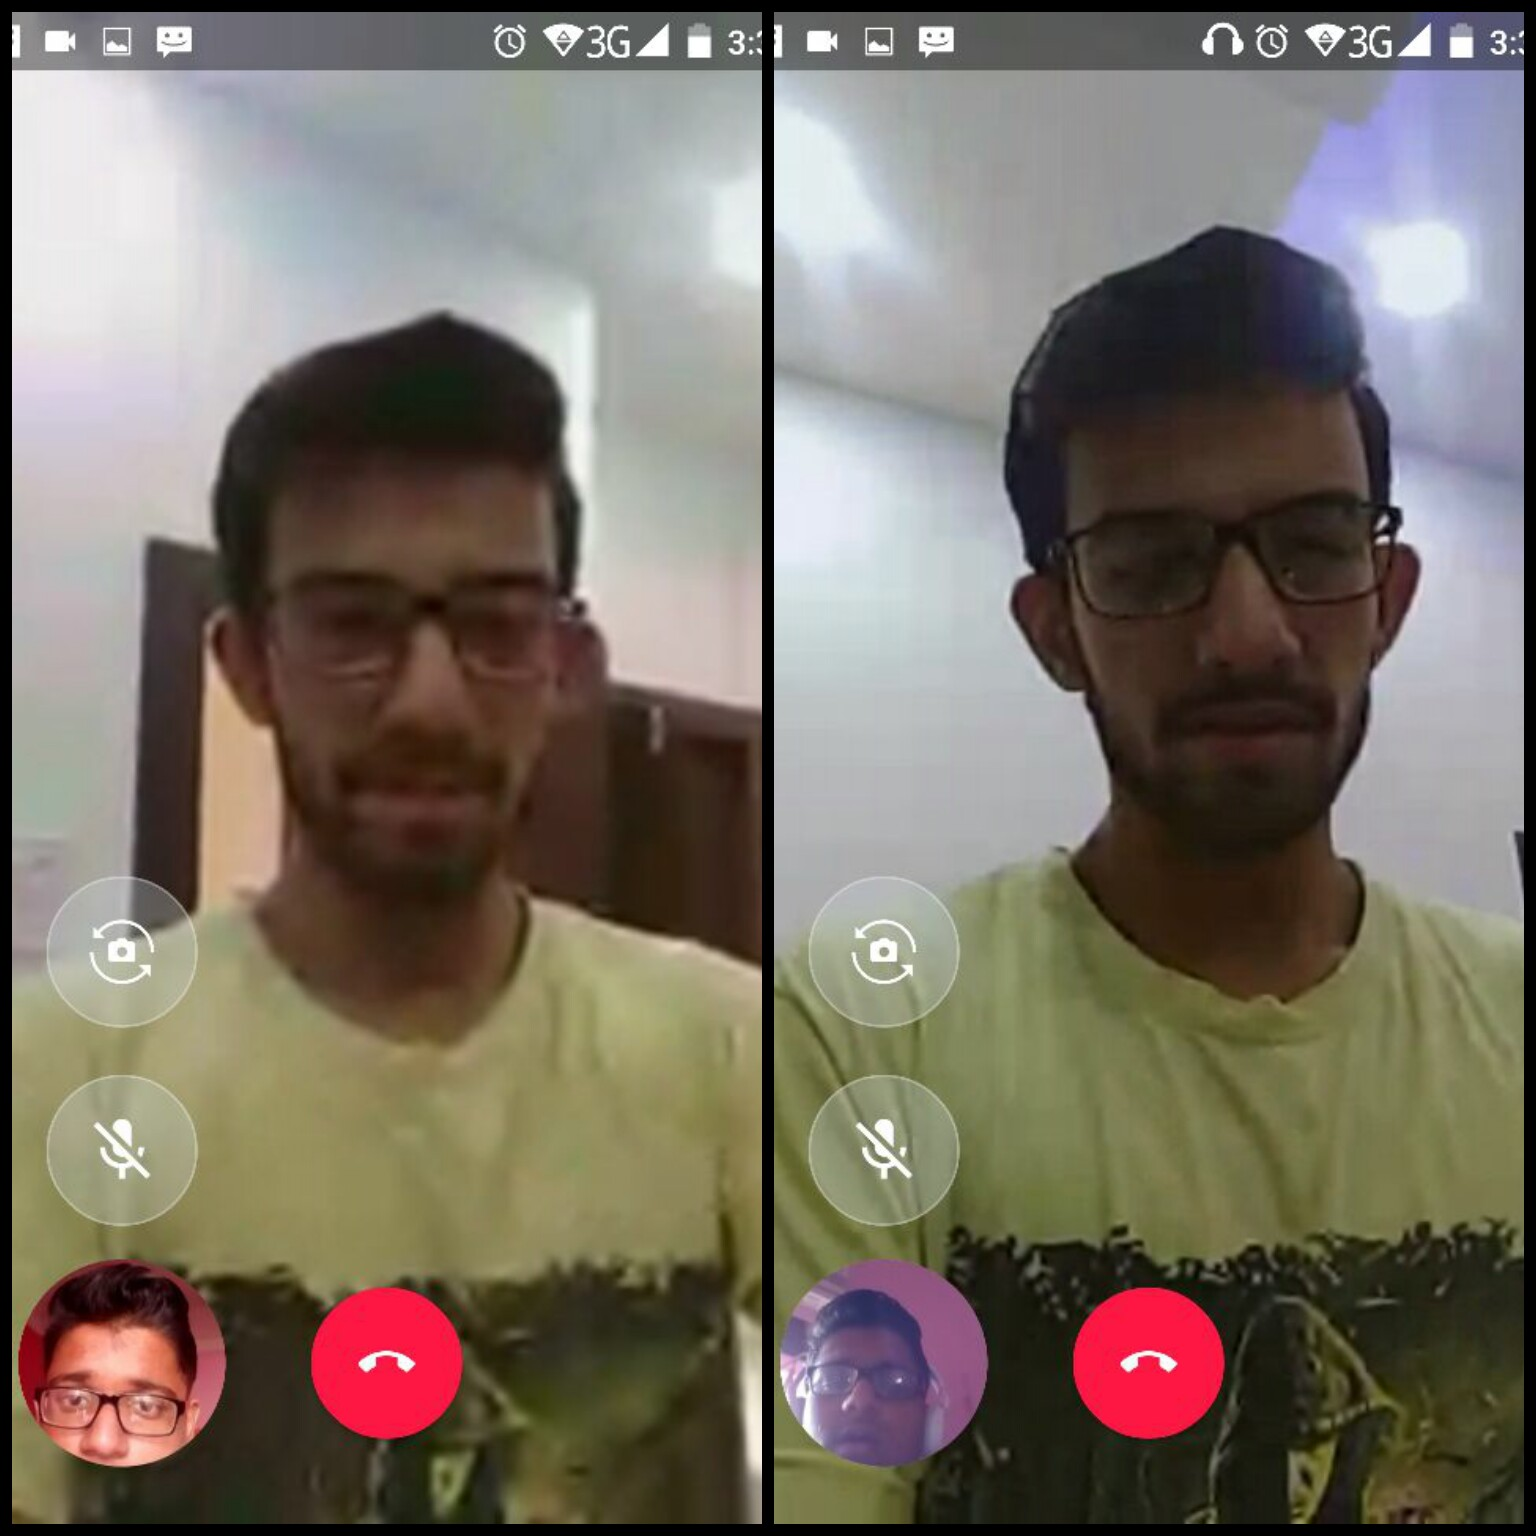 Call Quality of Google Duo!